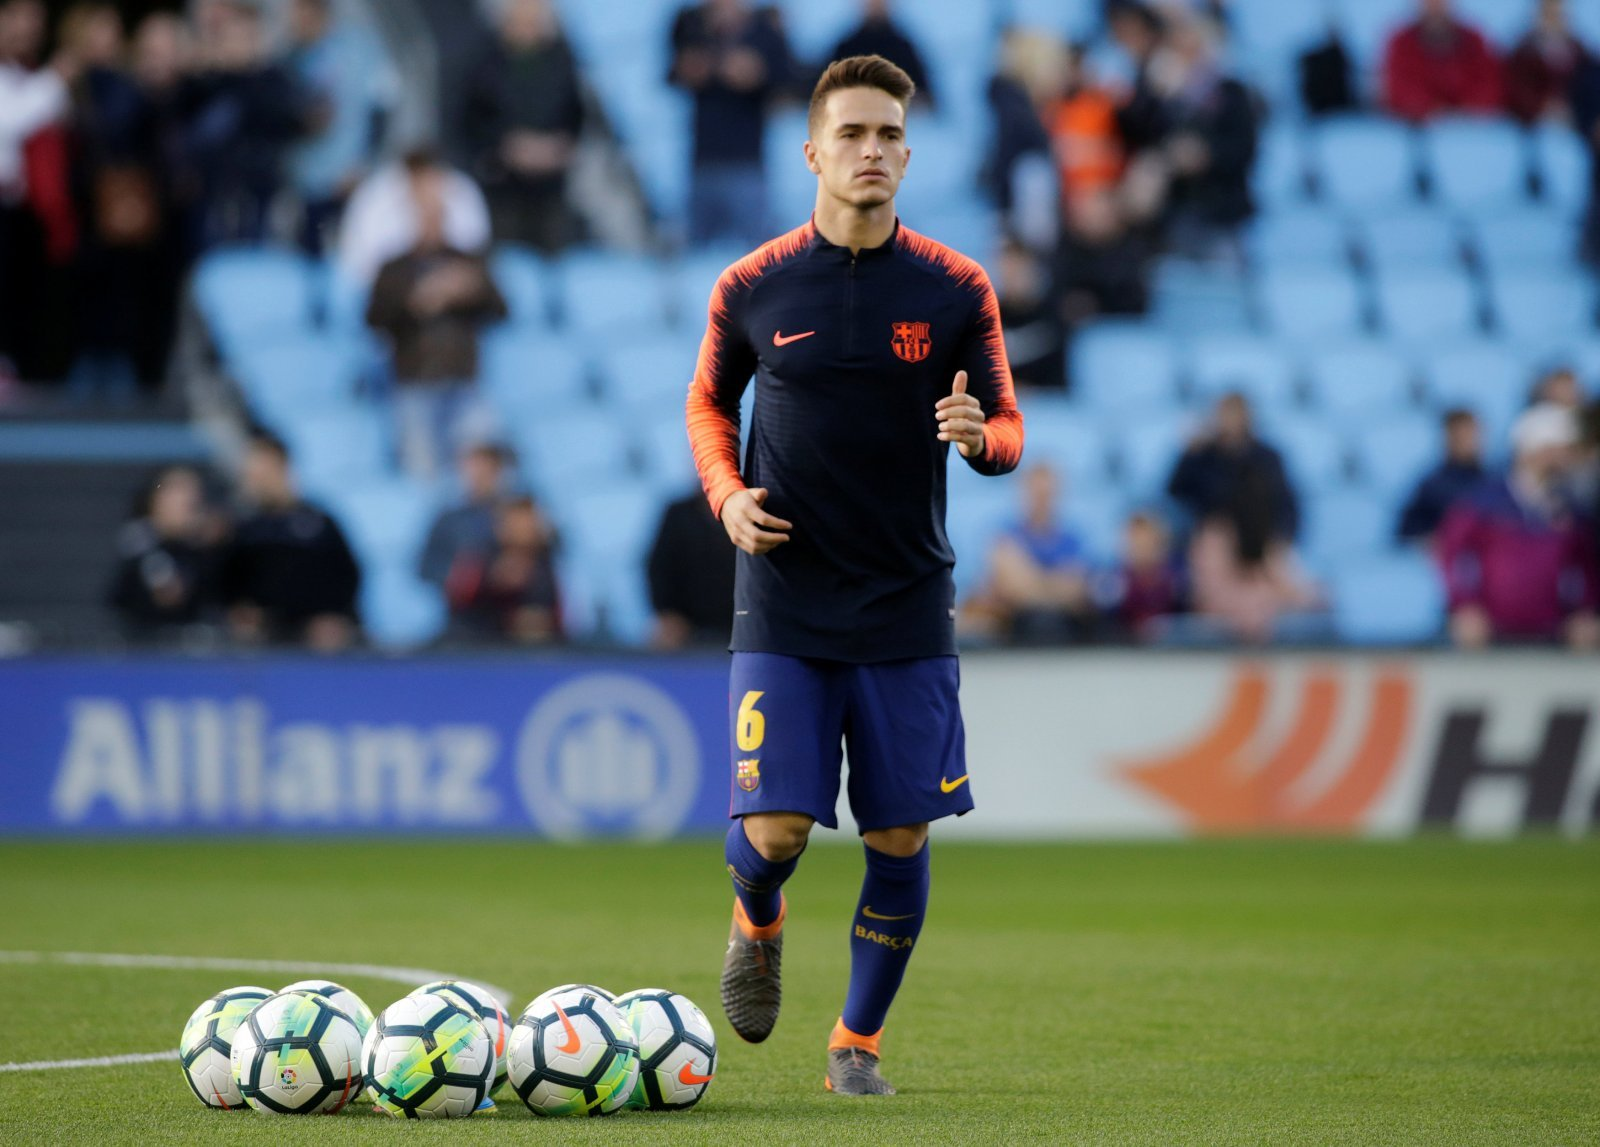 Denis Suarez and Unai Emery could work together well at Arsenal